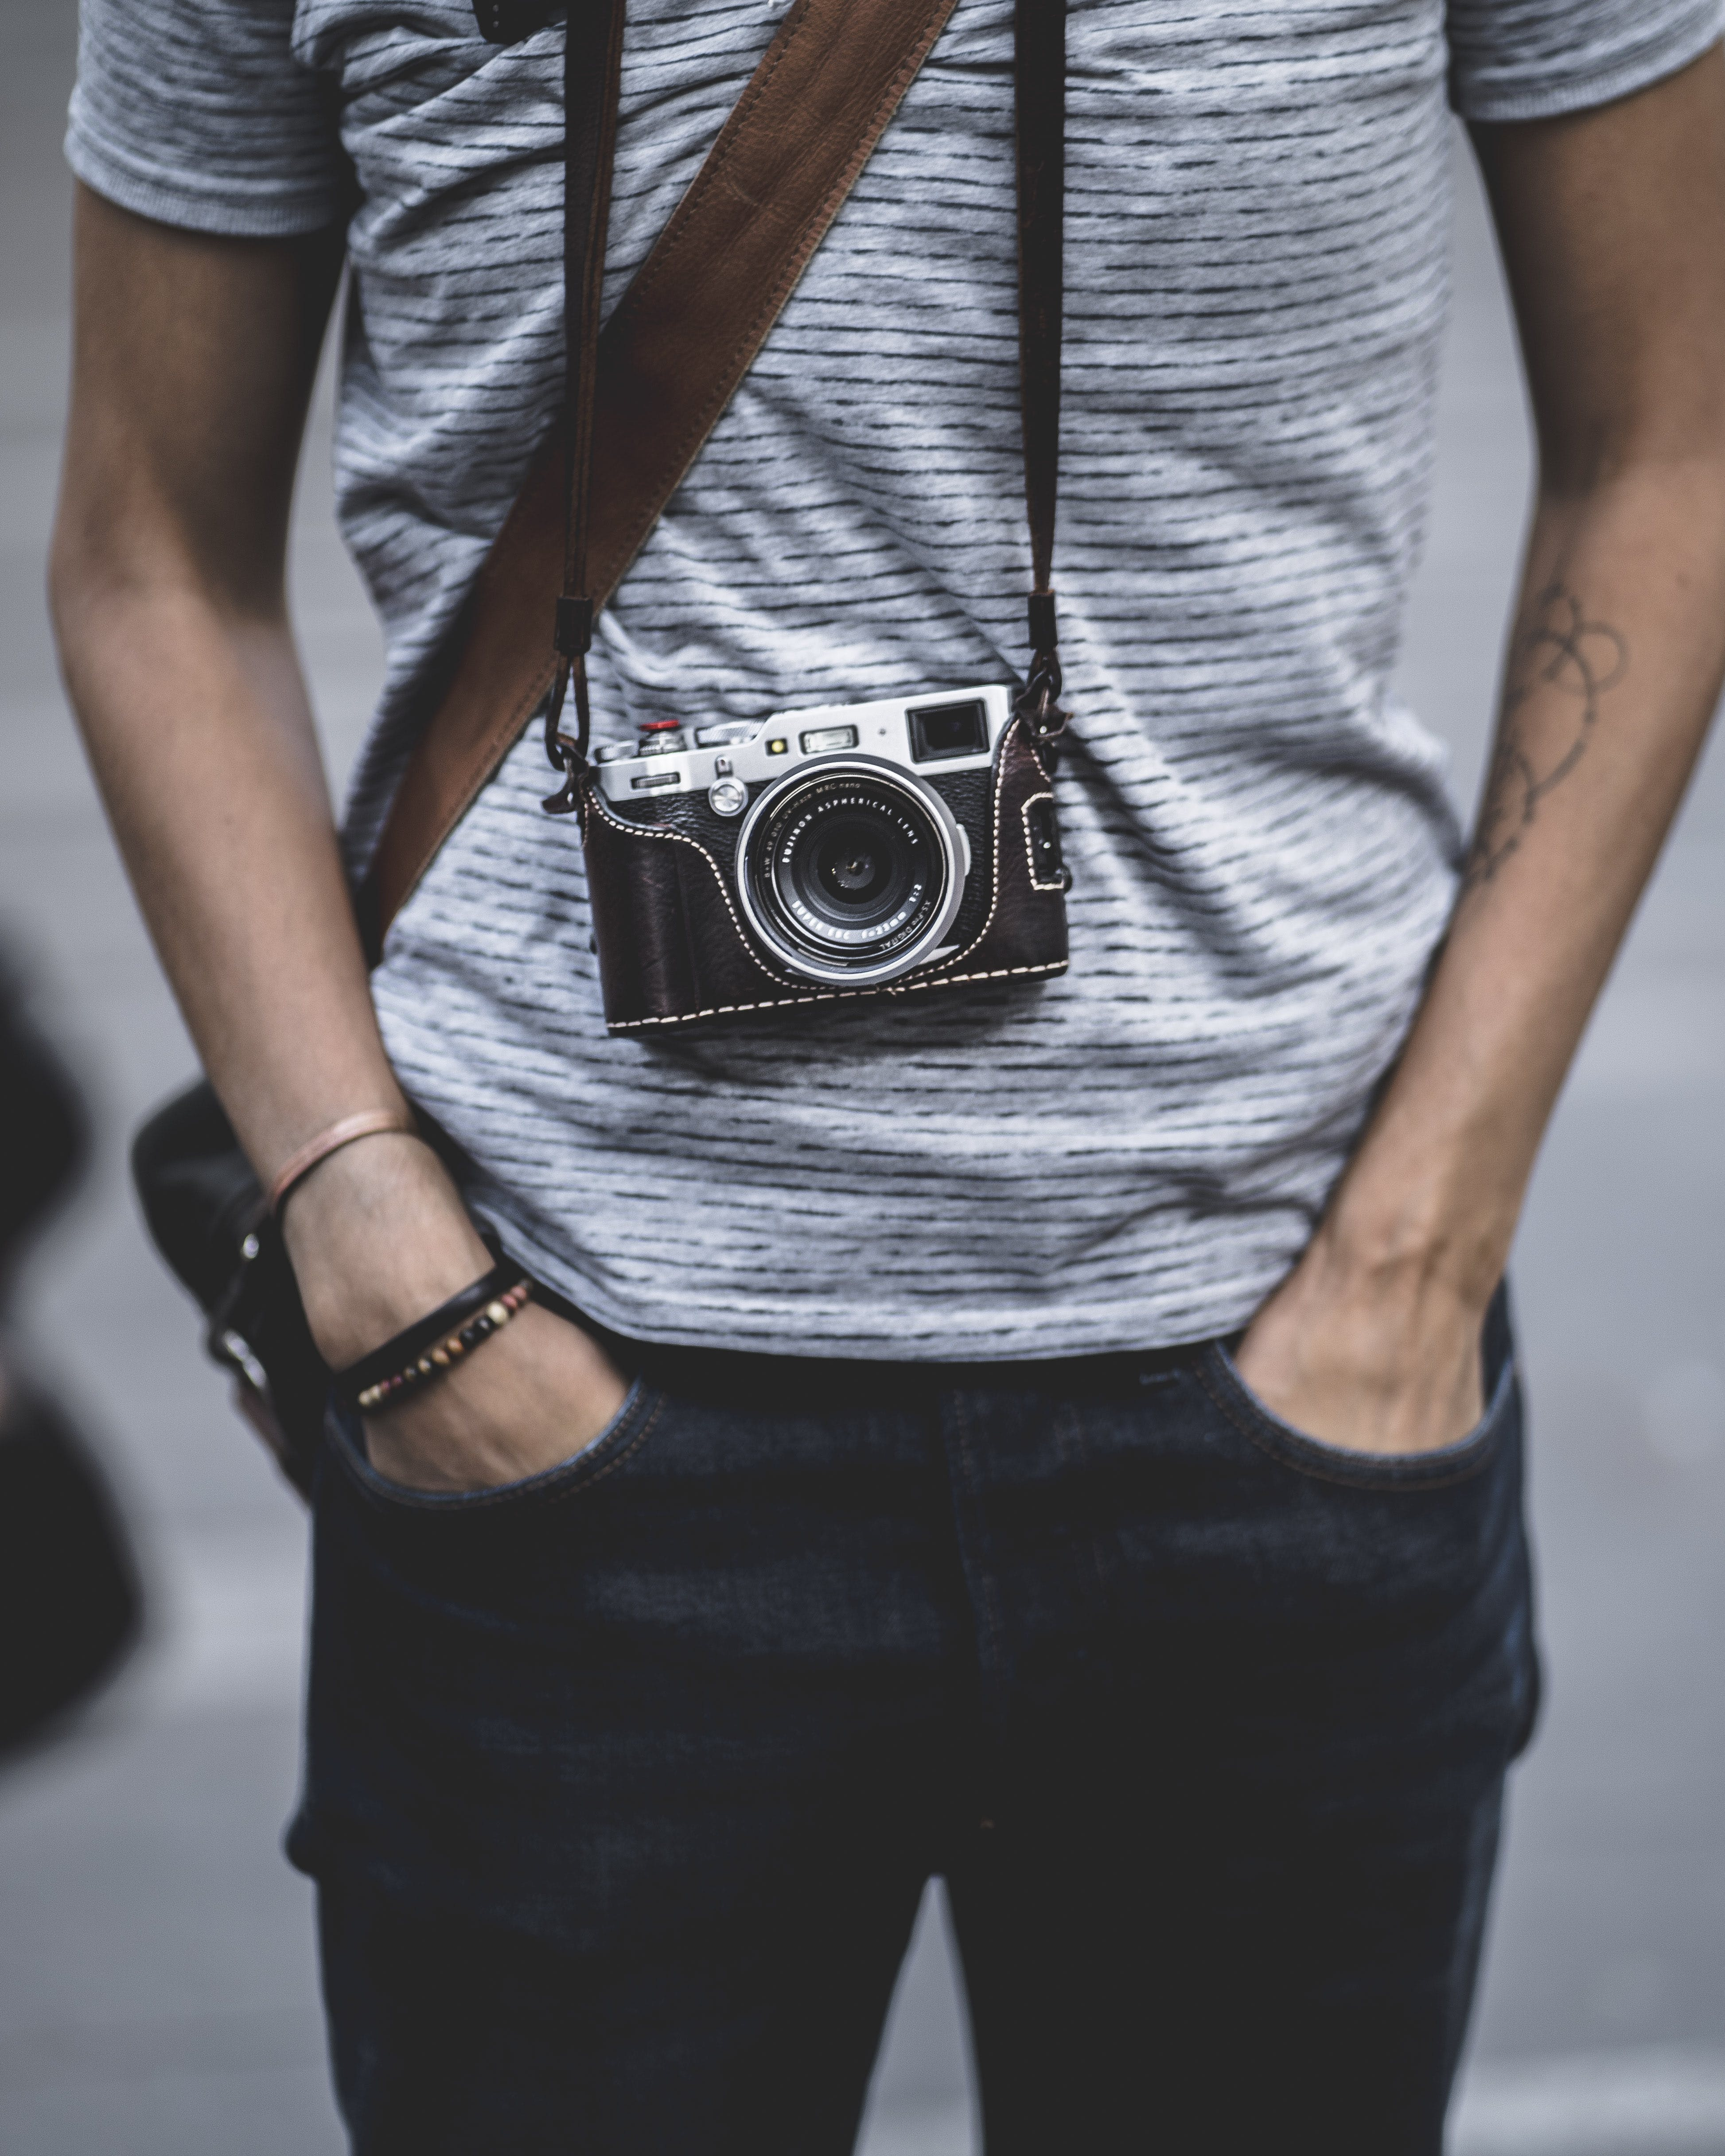 Man Wearing a Camera on his Neck Putting His Hand in Jeans Pocket